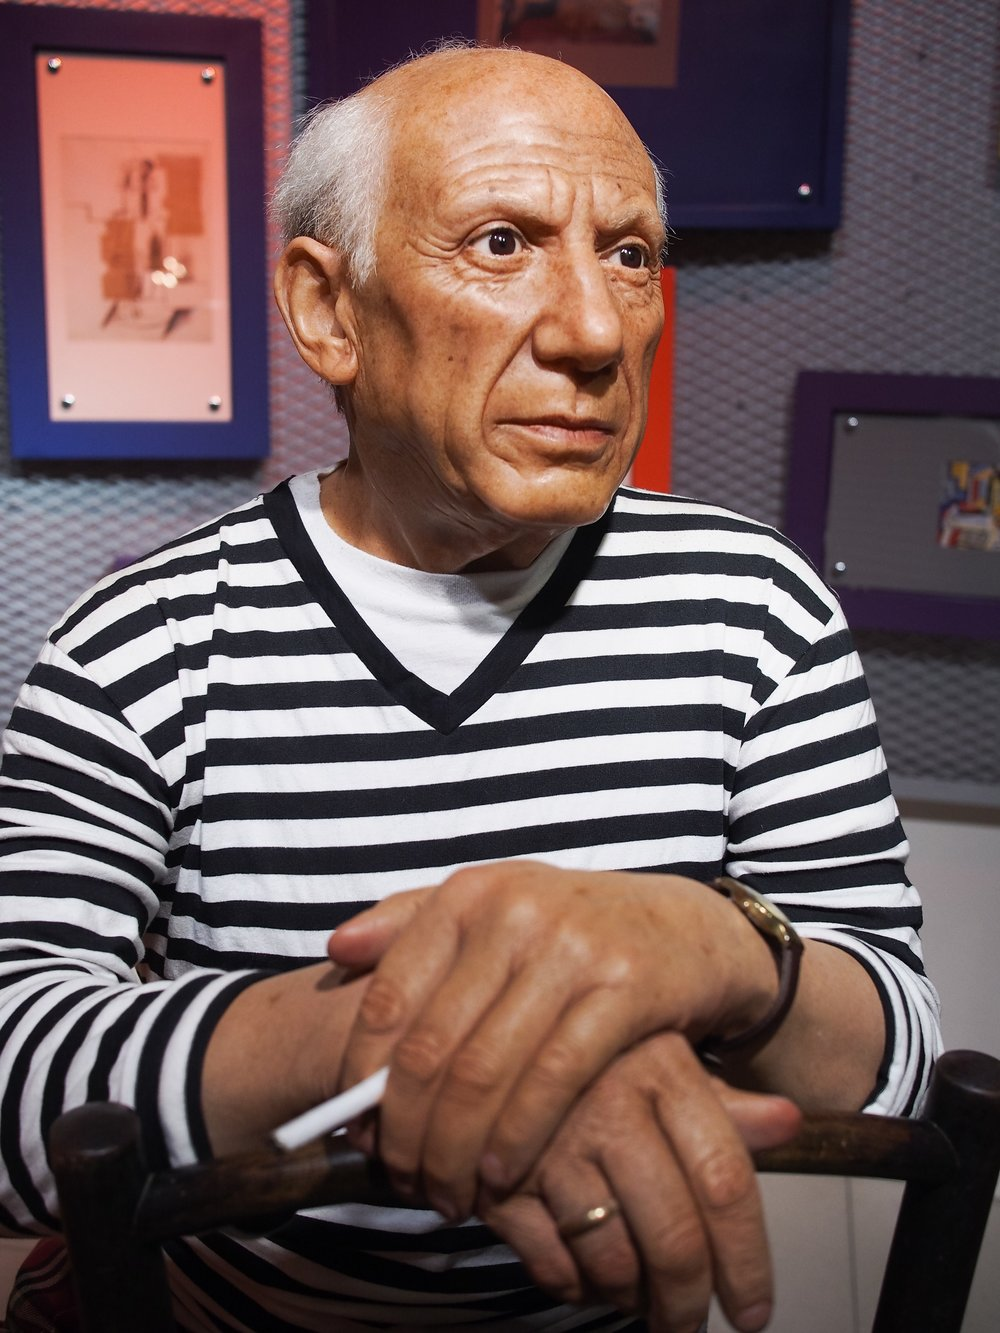 Pablo Picasso, a life long learner.